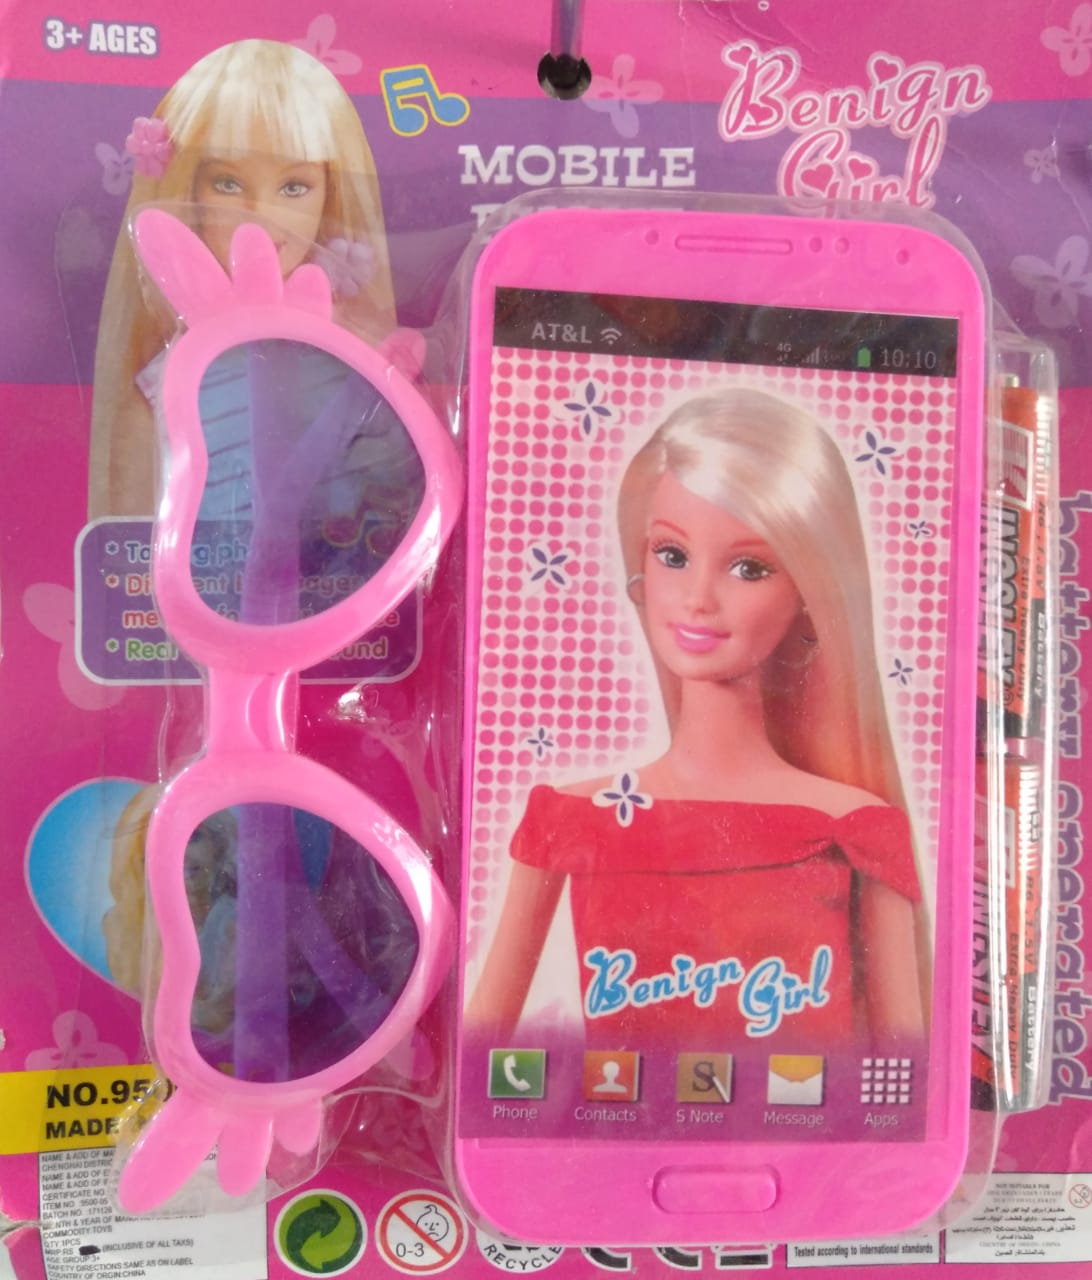 Barby sunglass & Mobile